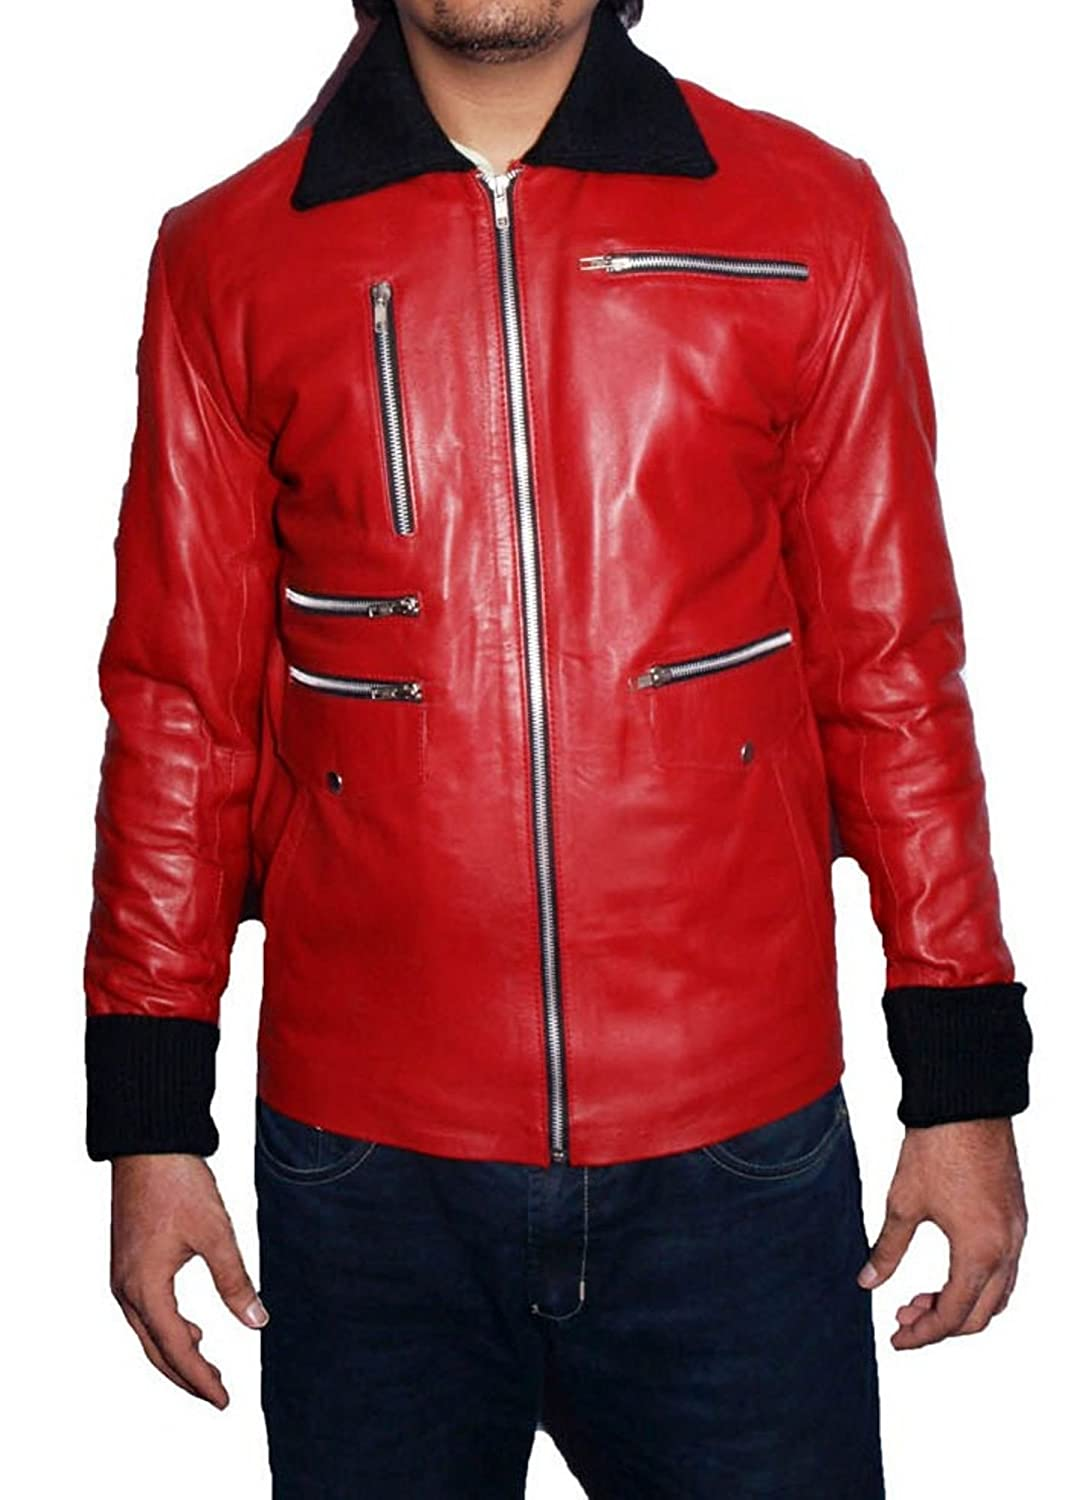 Men's Owens Sheep Red Leather Jacket